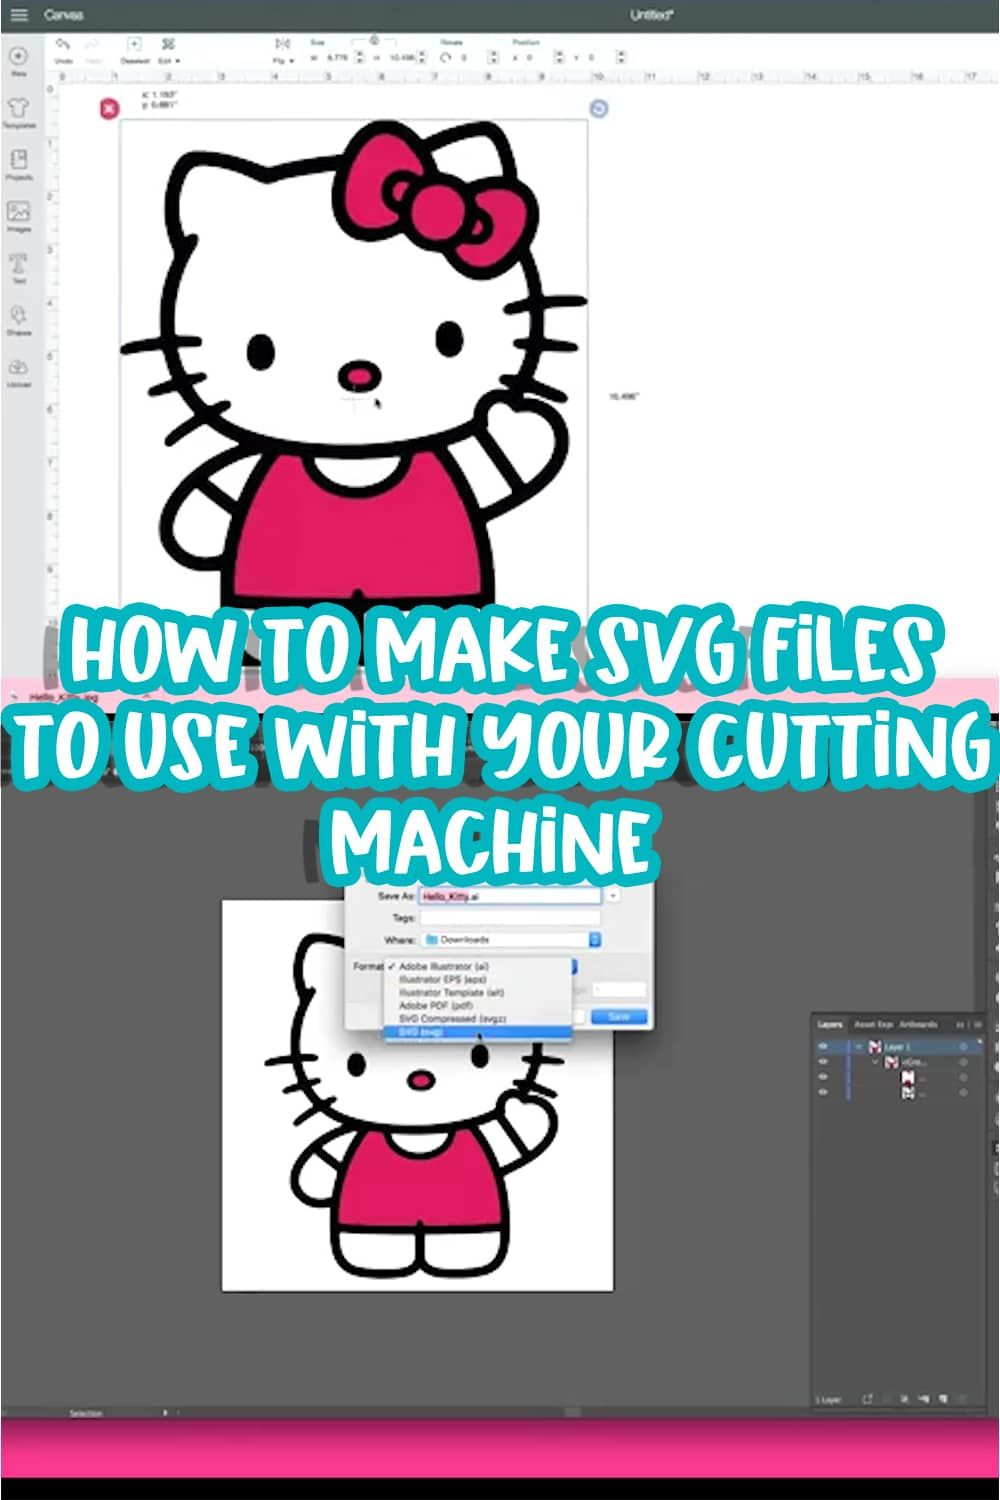 How To Make SVG Files To Use With Cricut and Silhouette